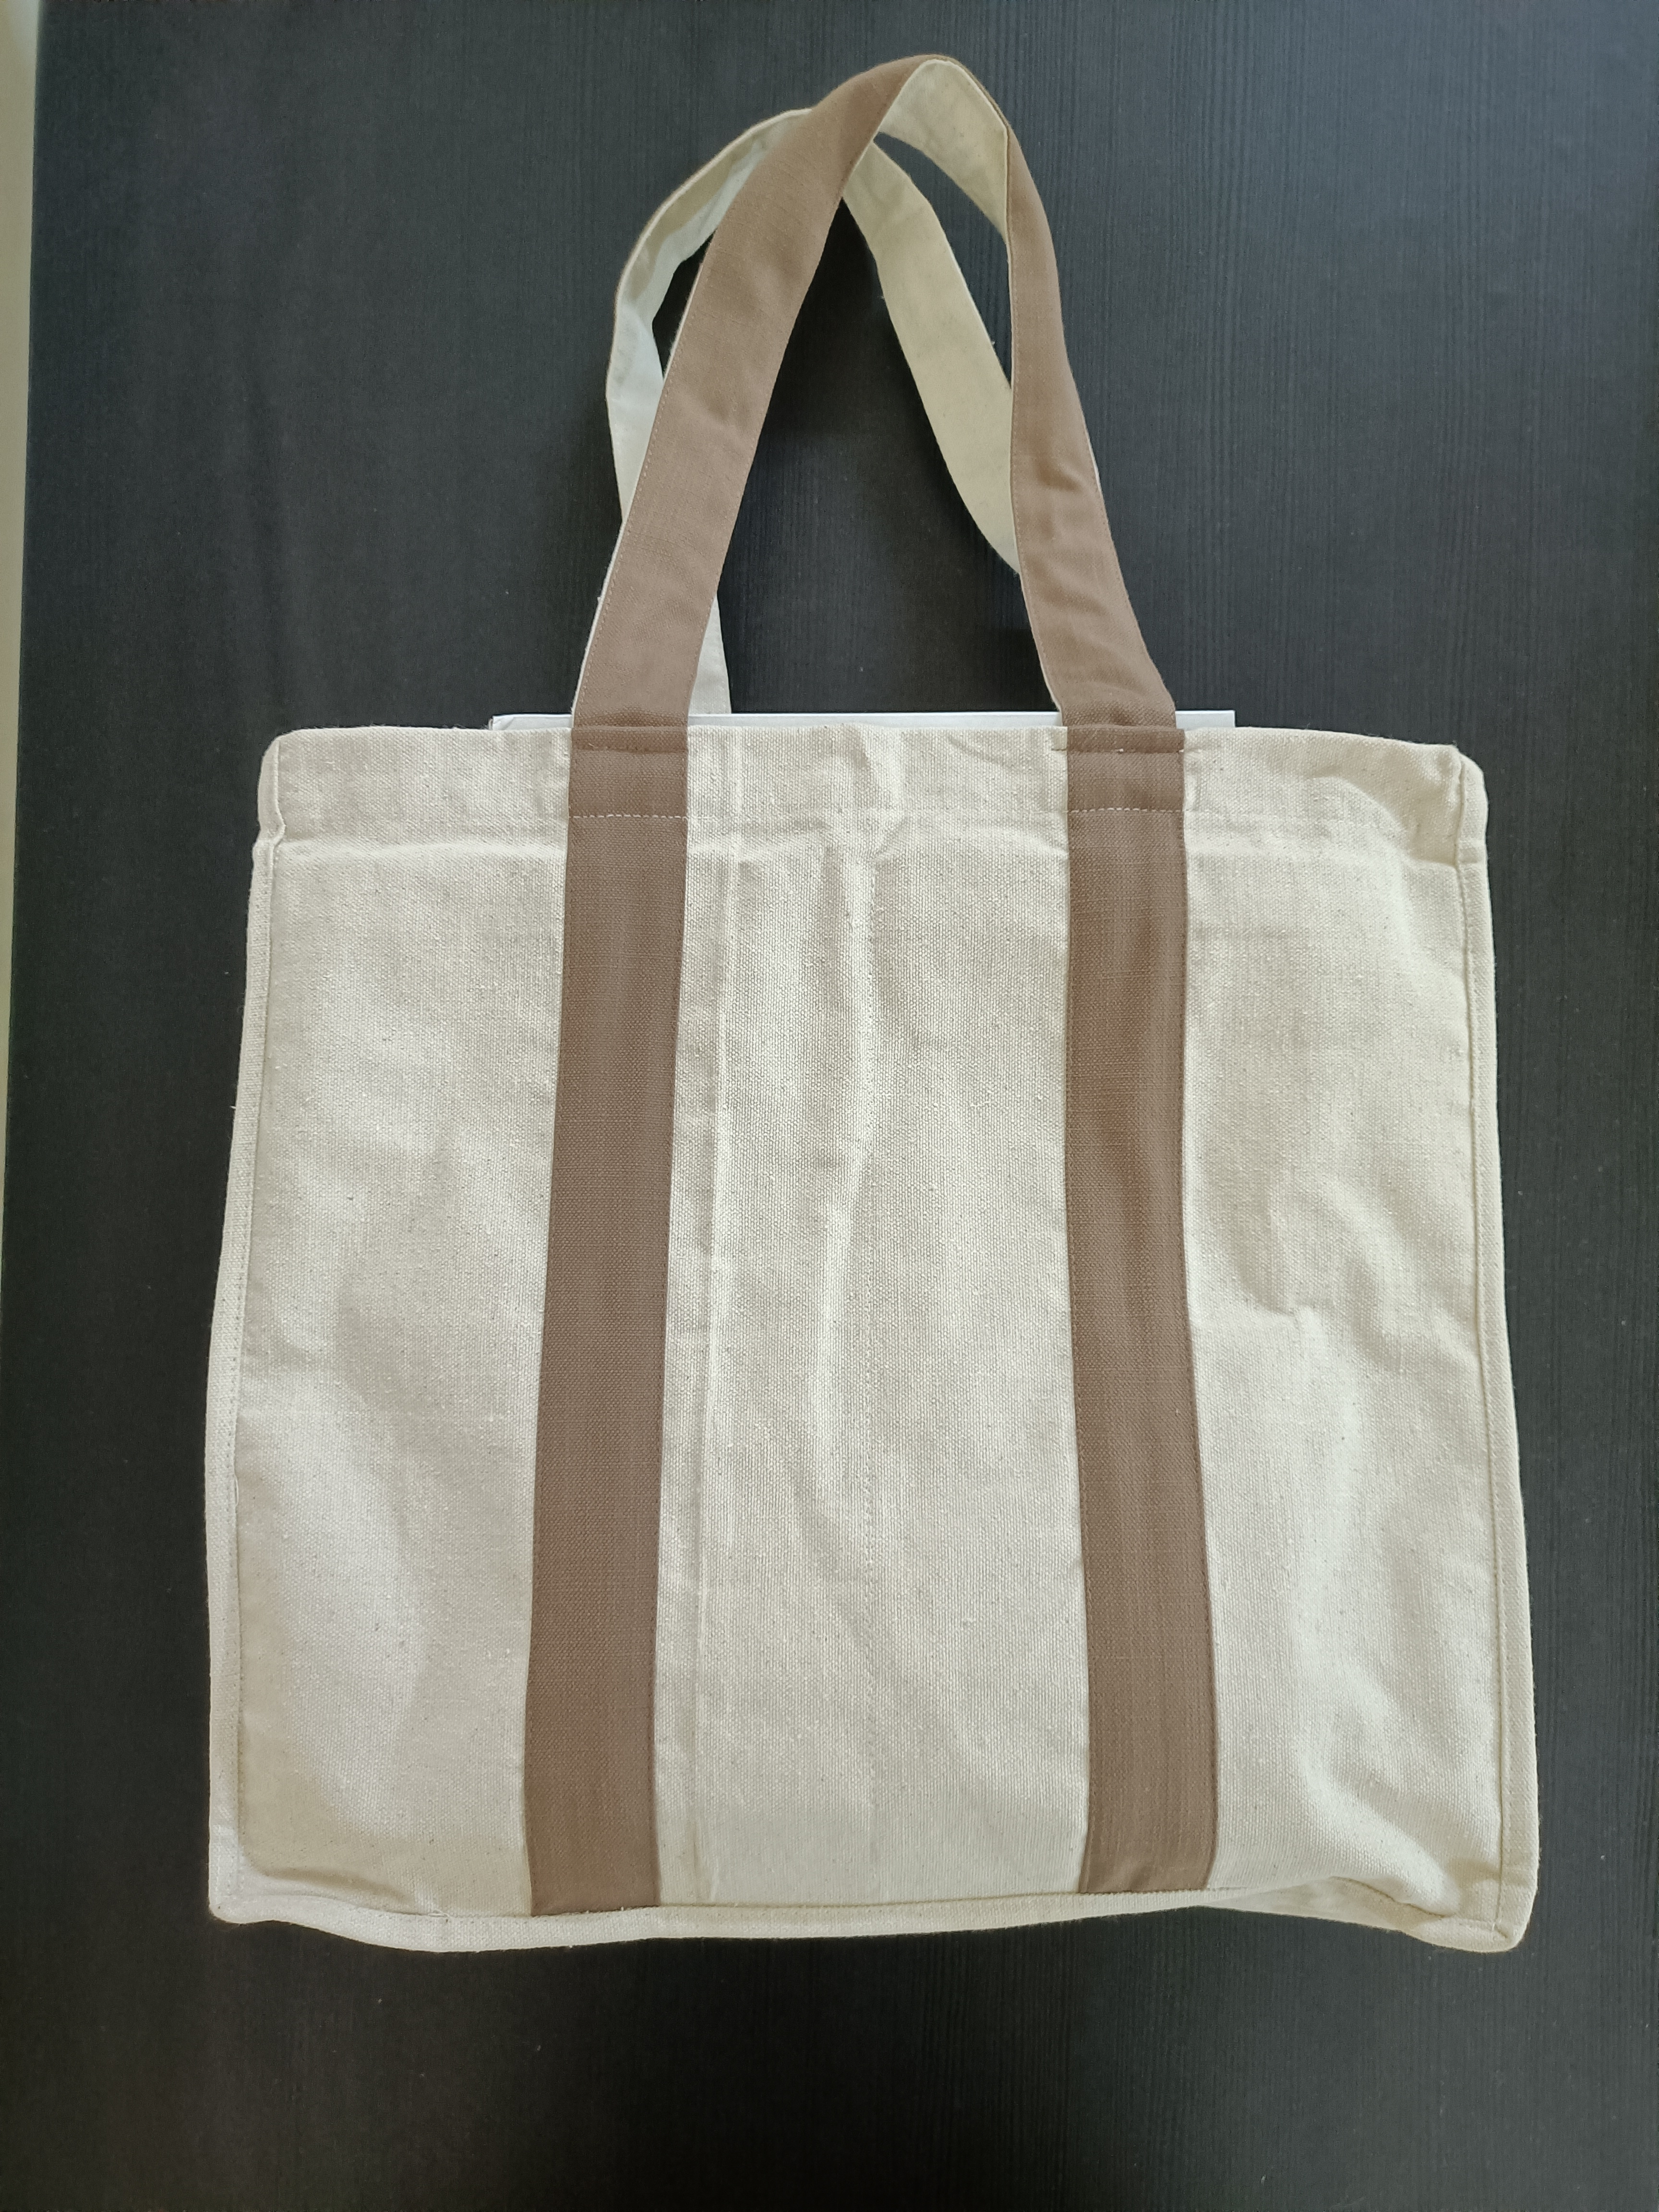 Market Bags with Inside Pockets Slider Thumbnail 1/4